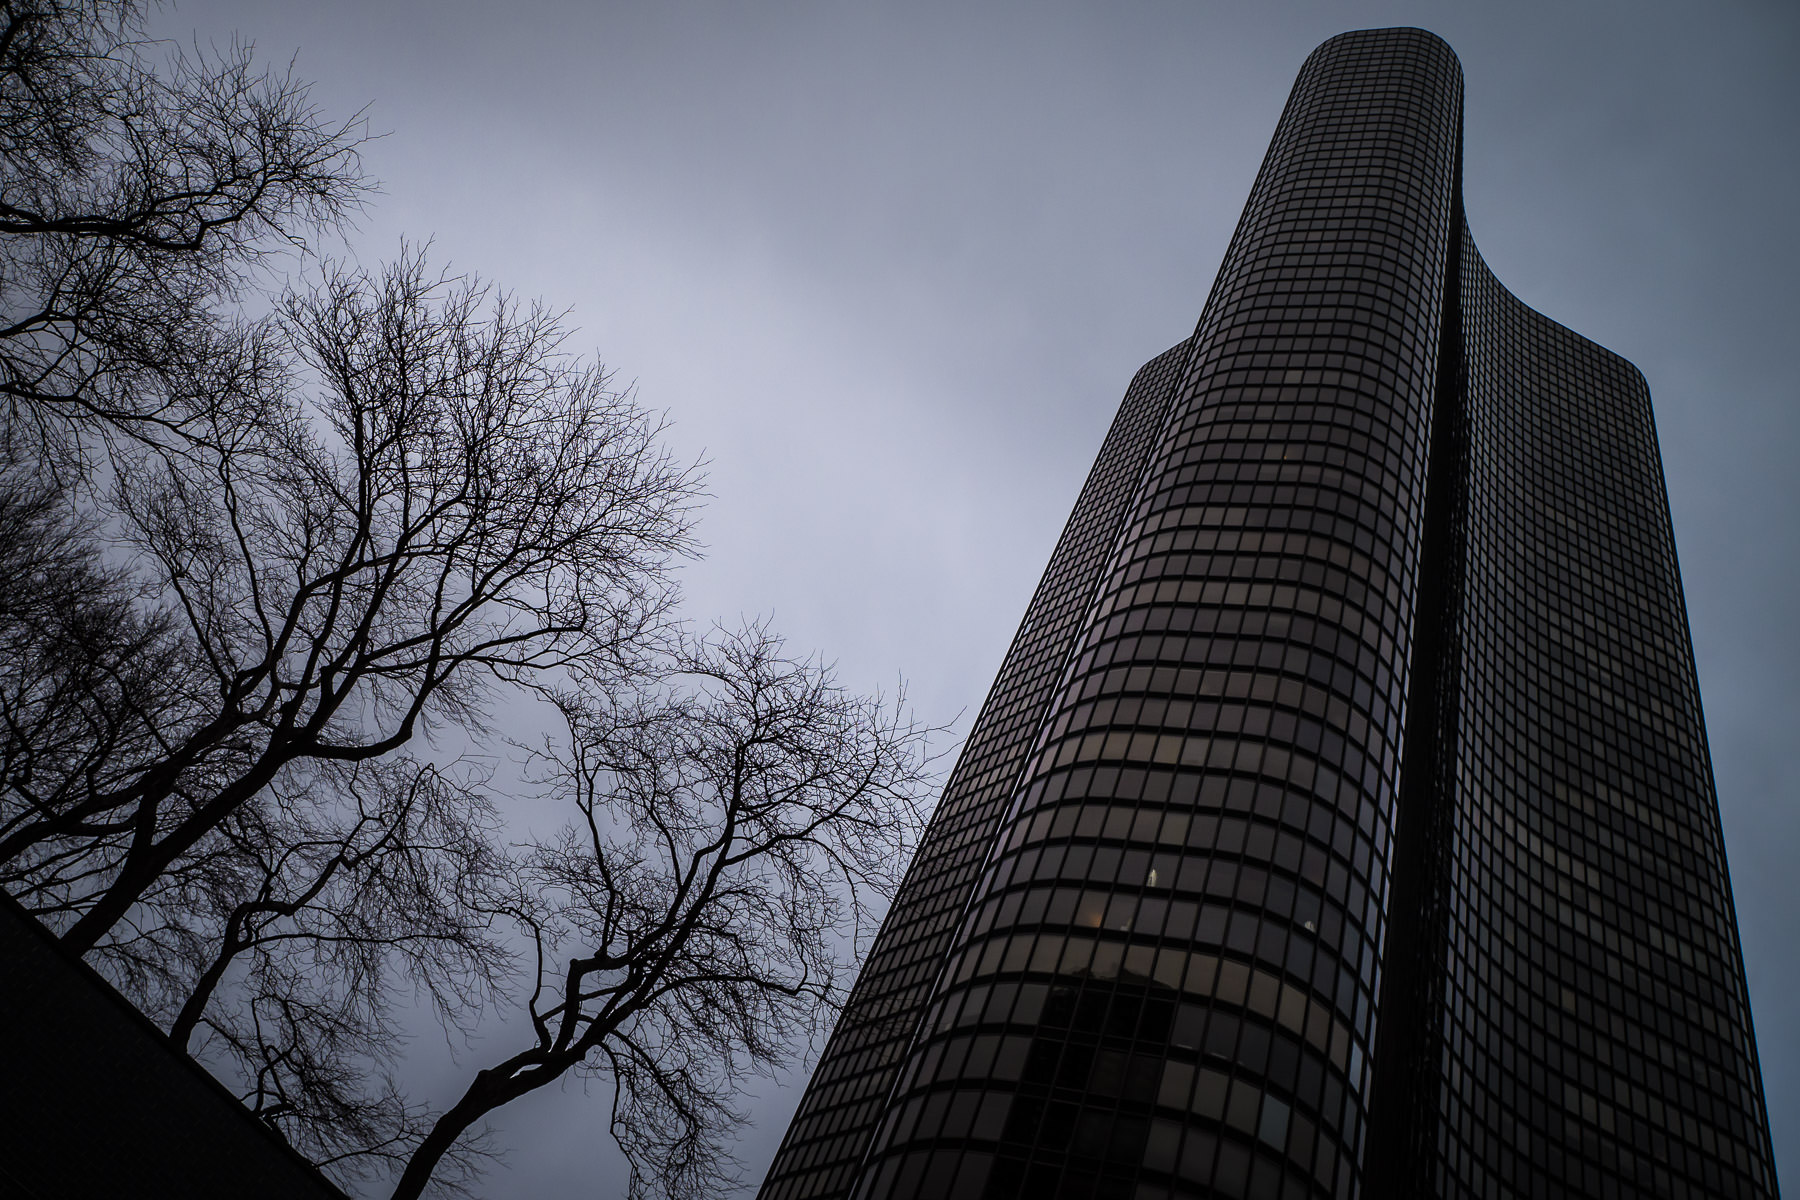 Lake Point Tower rises over barren wintry trees into the overcast Chicago sky.